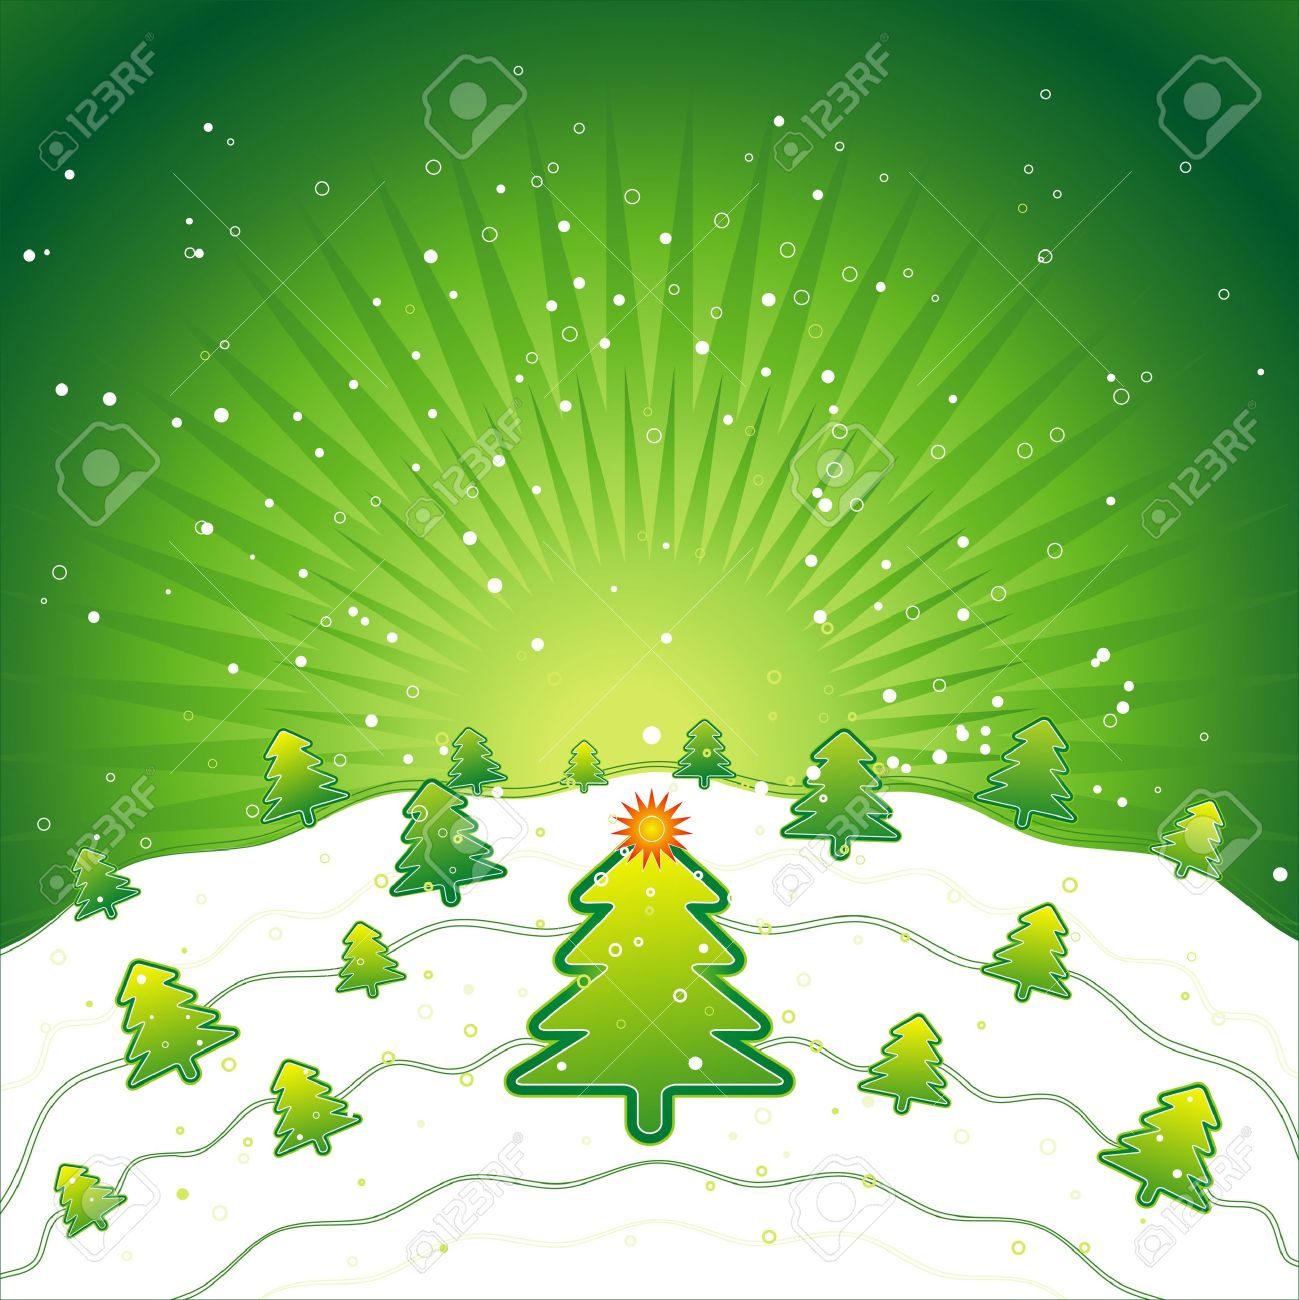 new, eve, tree, star, xmas, card, pine, snow, print, green, flake, field, curve, light, paint, shape, color, merry, alder, vector, forest, design, winter, nature, natural, holiday, graphic, drawing, clipart, colours, picture, cartoon, greeting, trimming, abstract, radiance, gradation, christmas, snowflake, beautiful, decoration, composition, stylization, illustration Stock Vector - 1390711